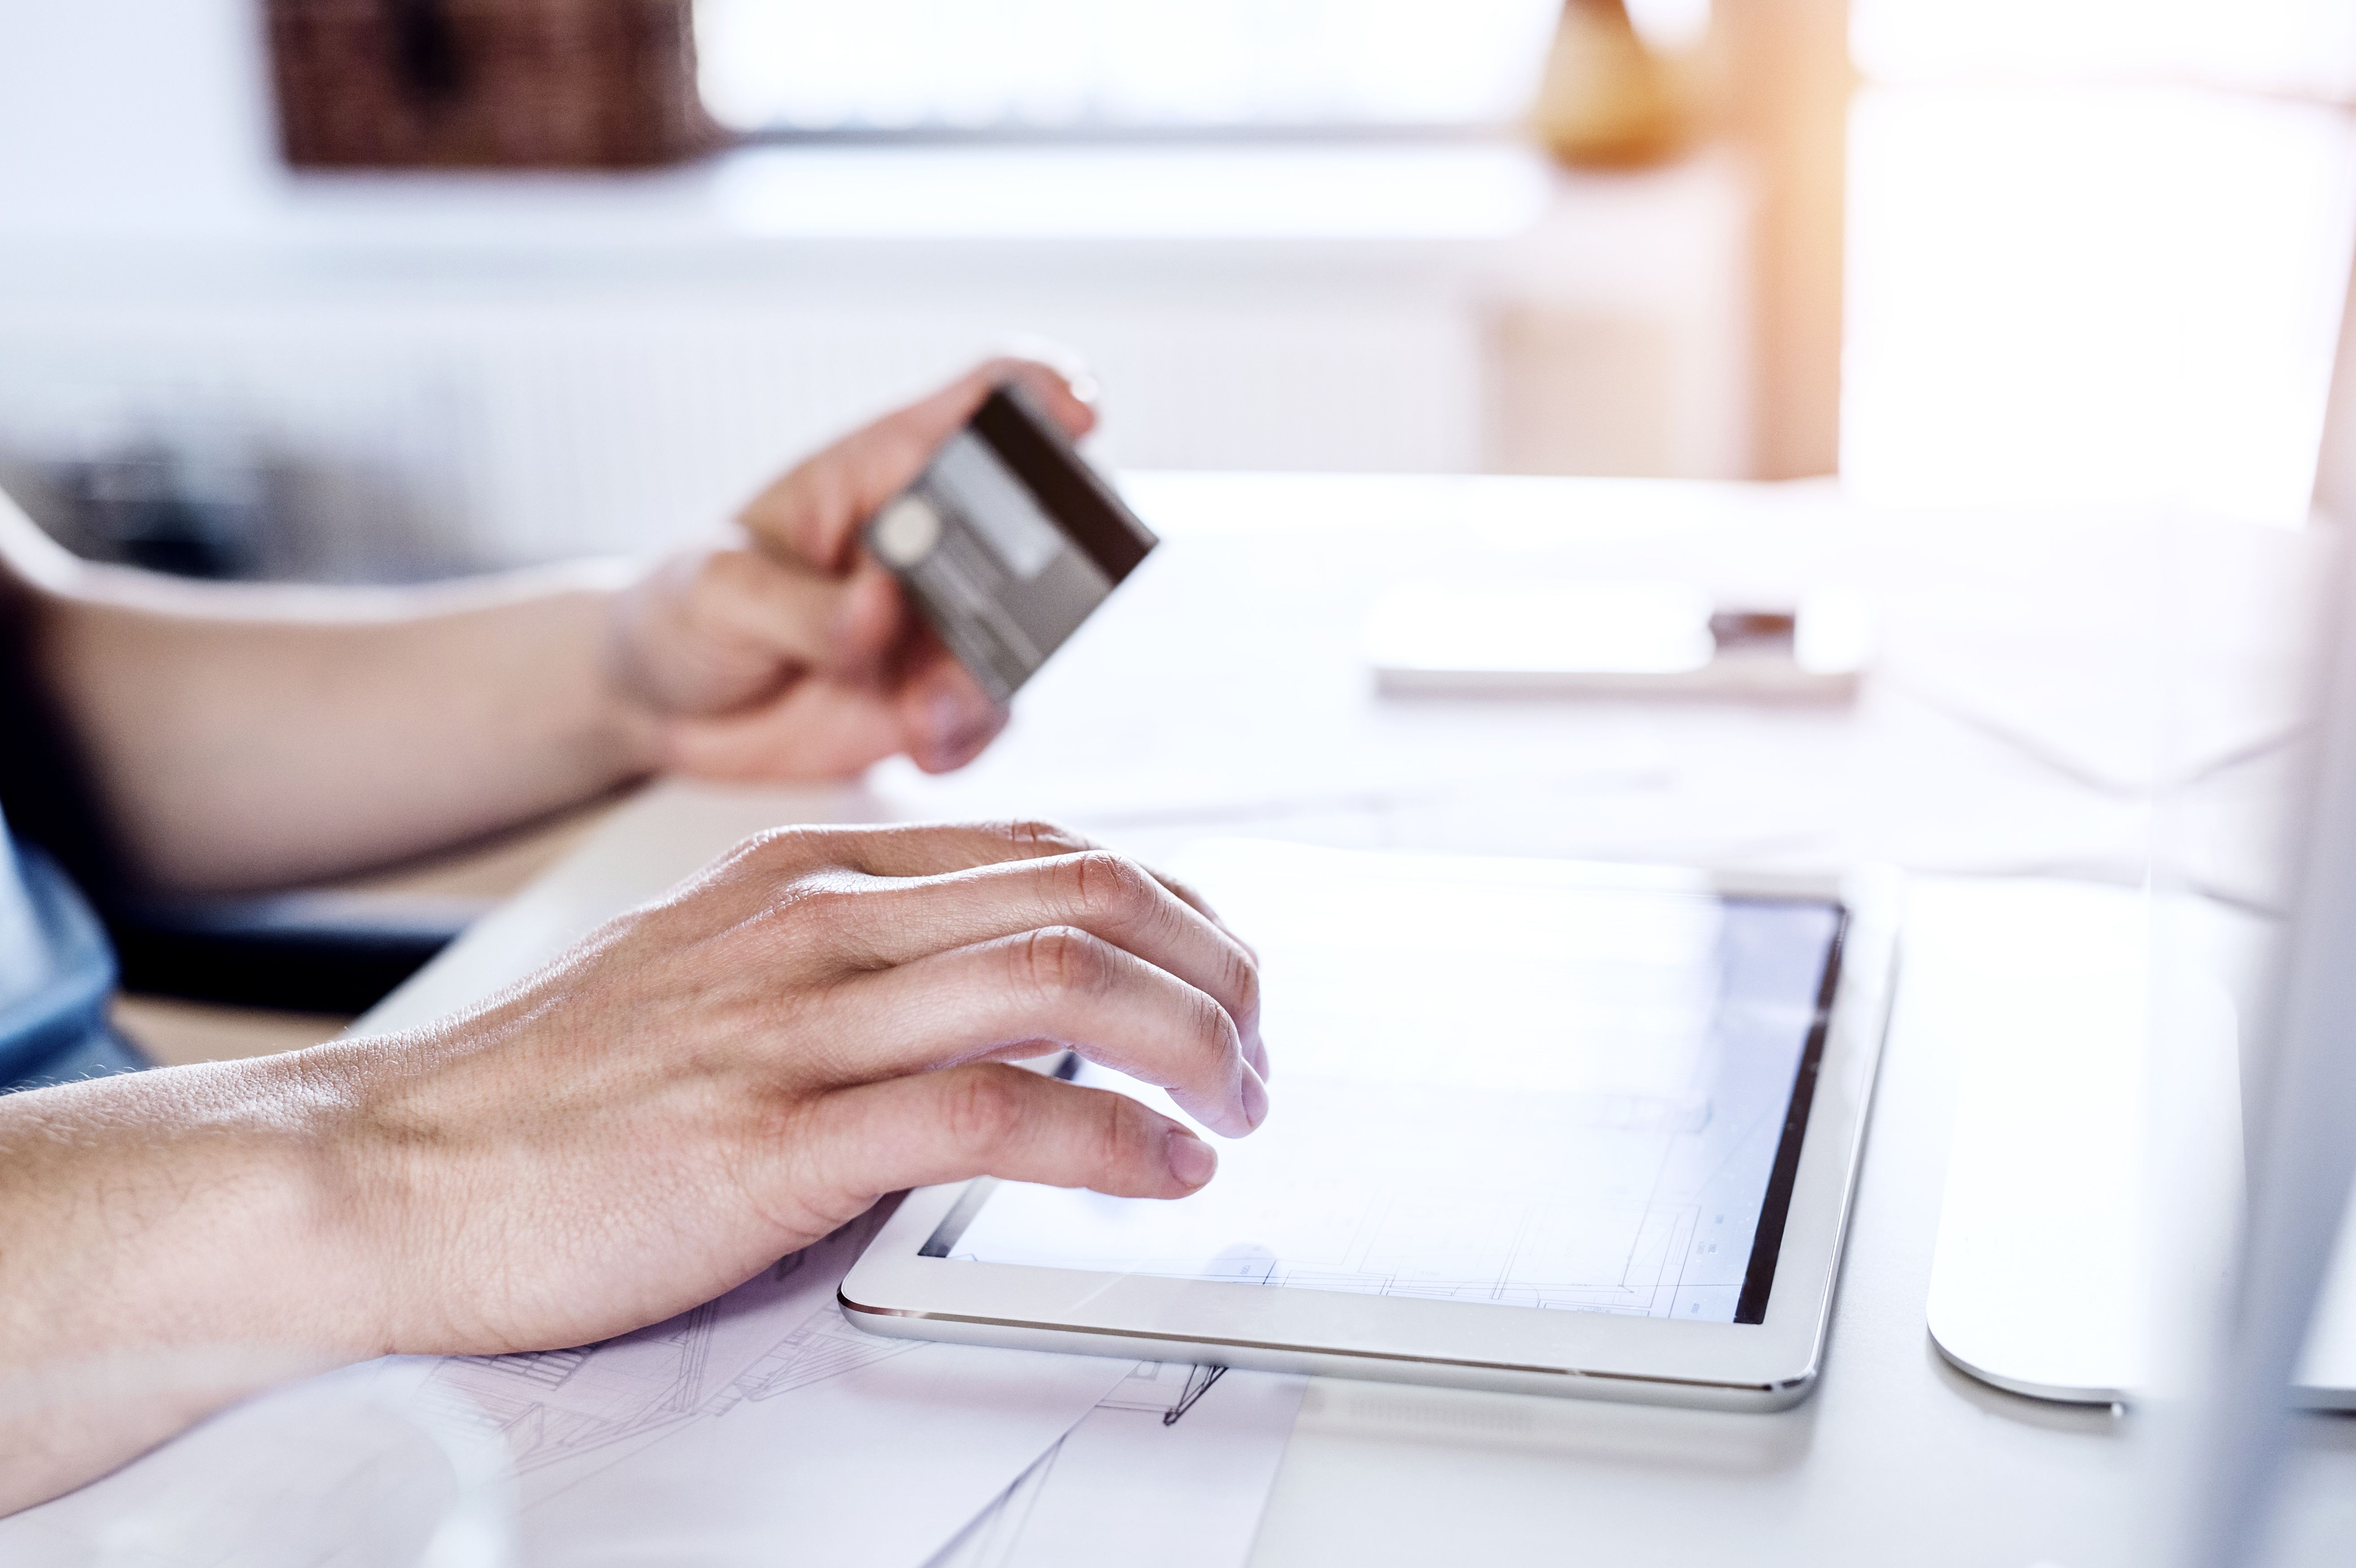 Get To Know The Parts Of A Debit Or Credit Card Wiring Money American Express